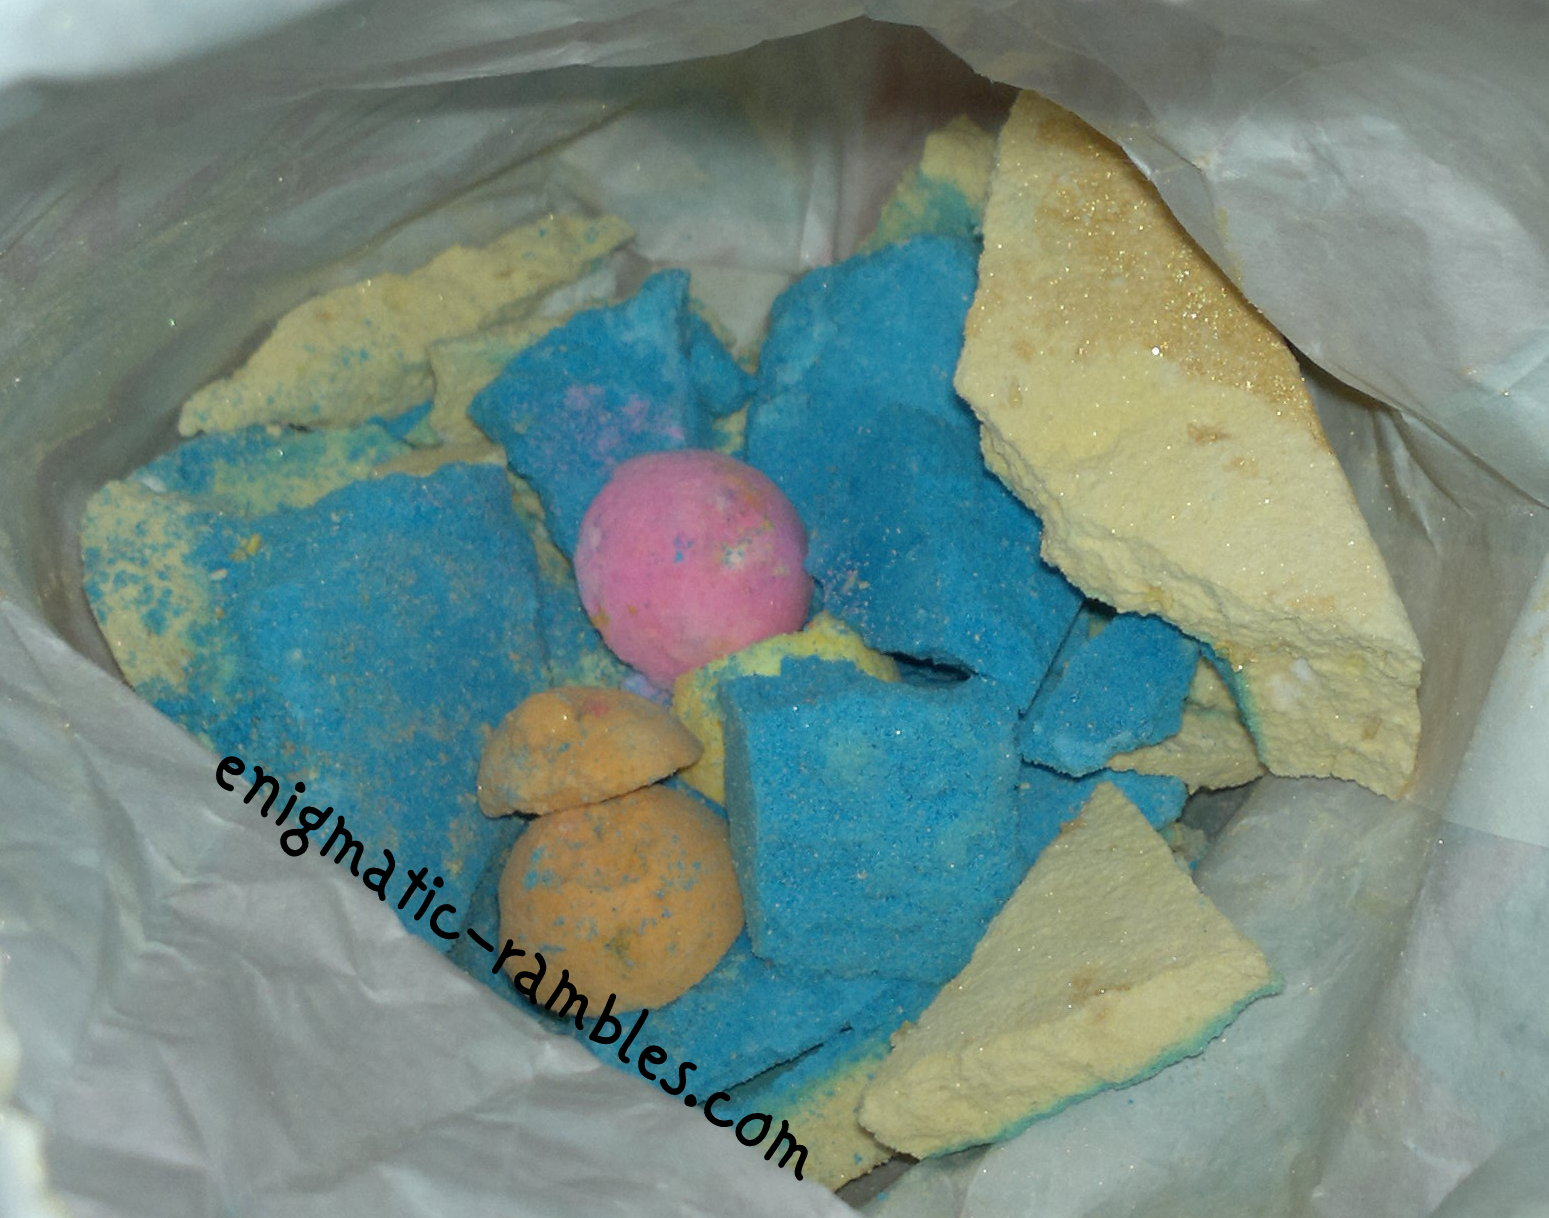 Lush-Golden-Wonder-Bath-Ballistic-Christmas-2013-review